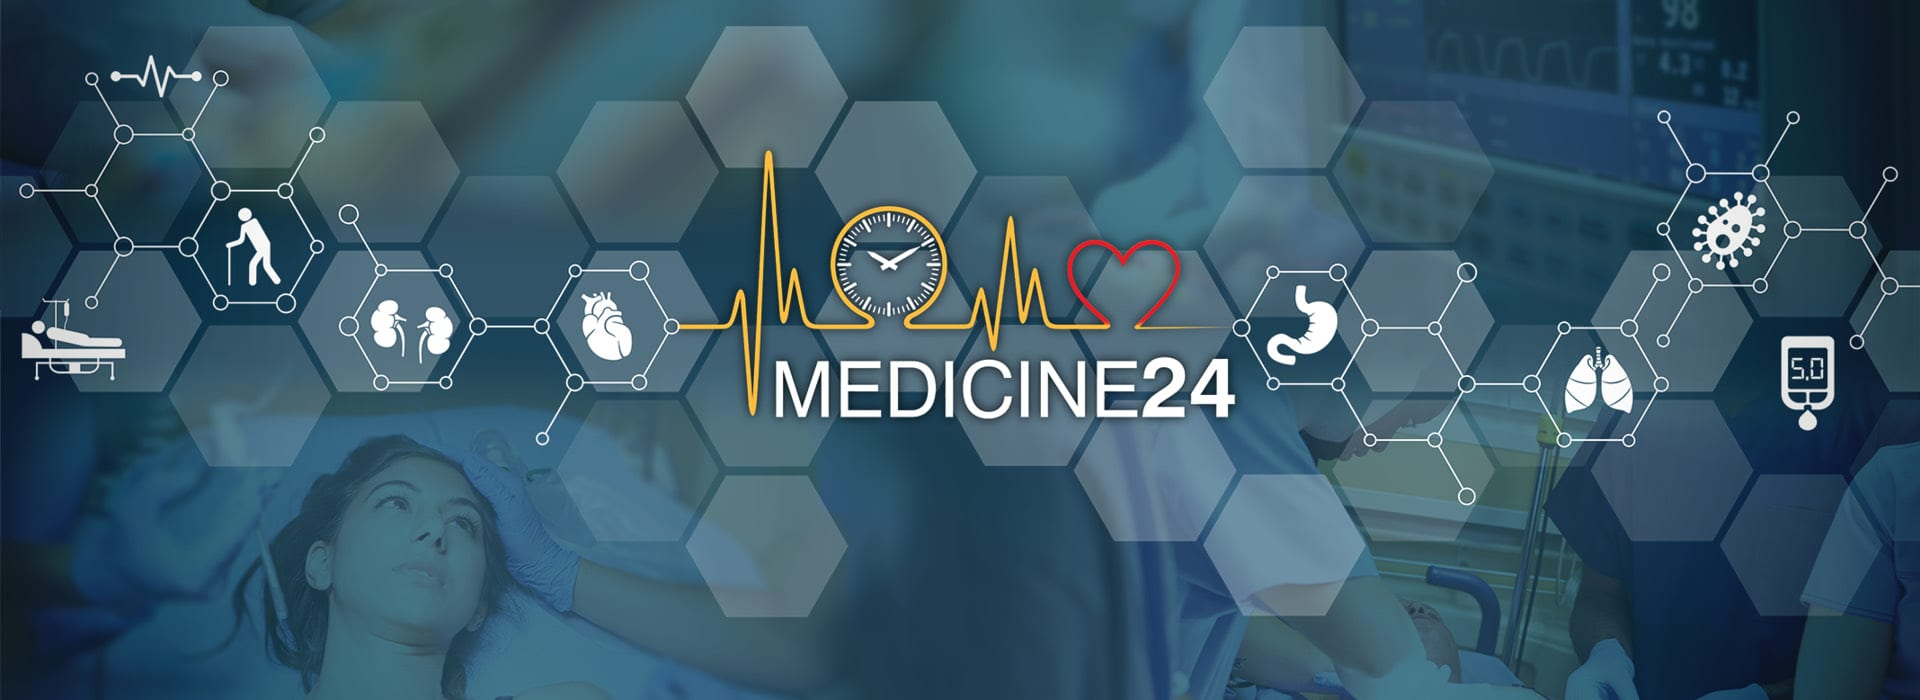 Medicine24 – one week to go